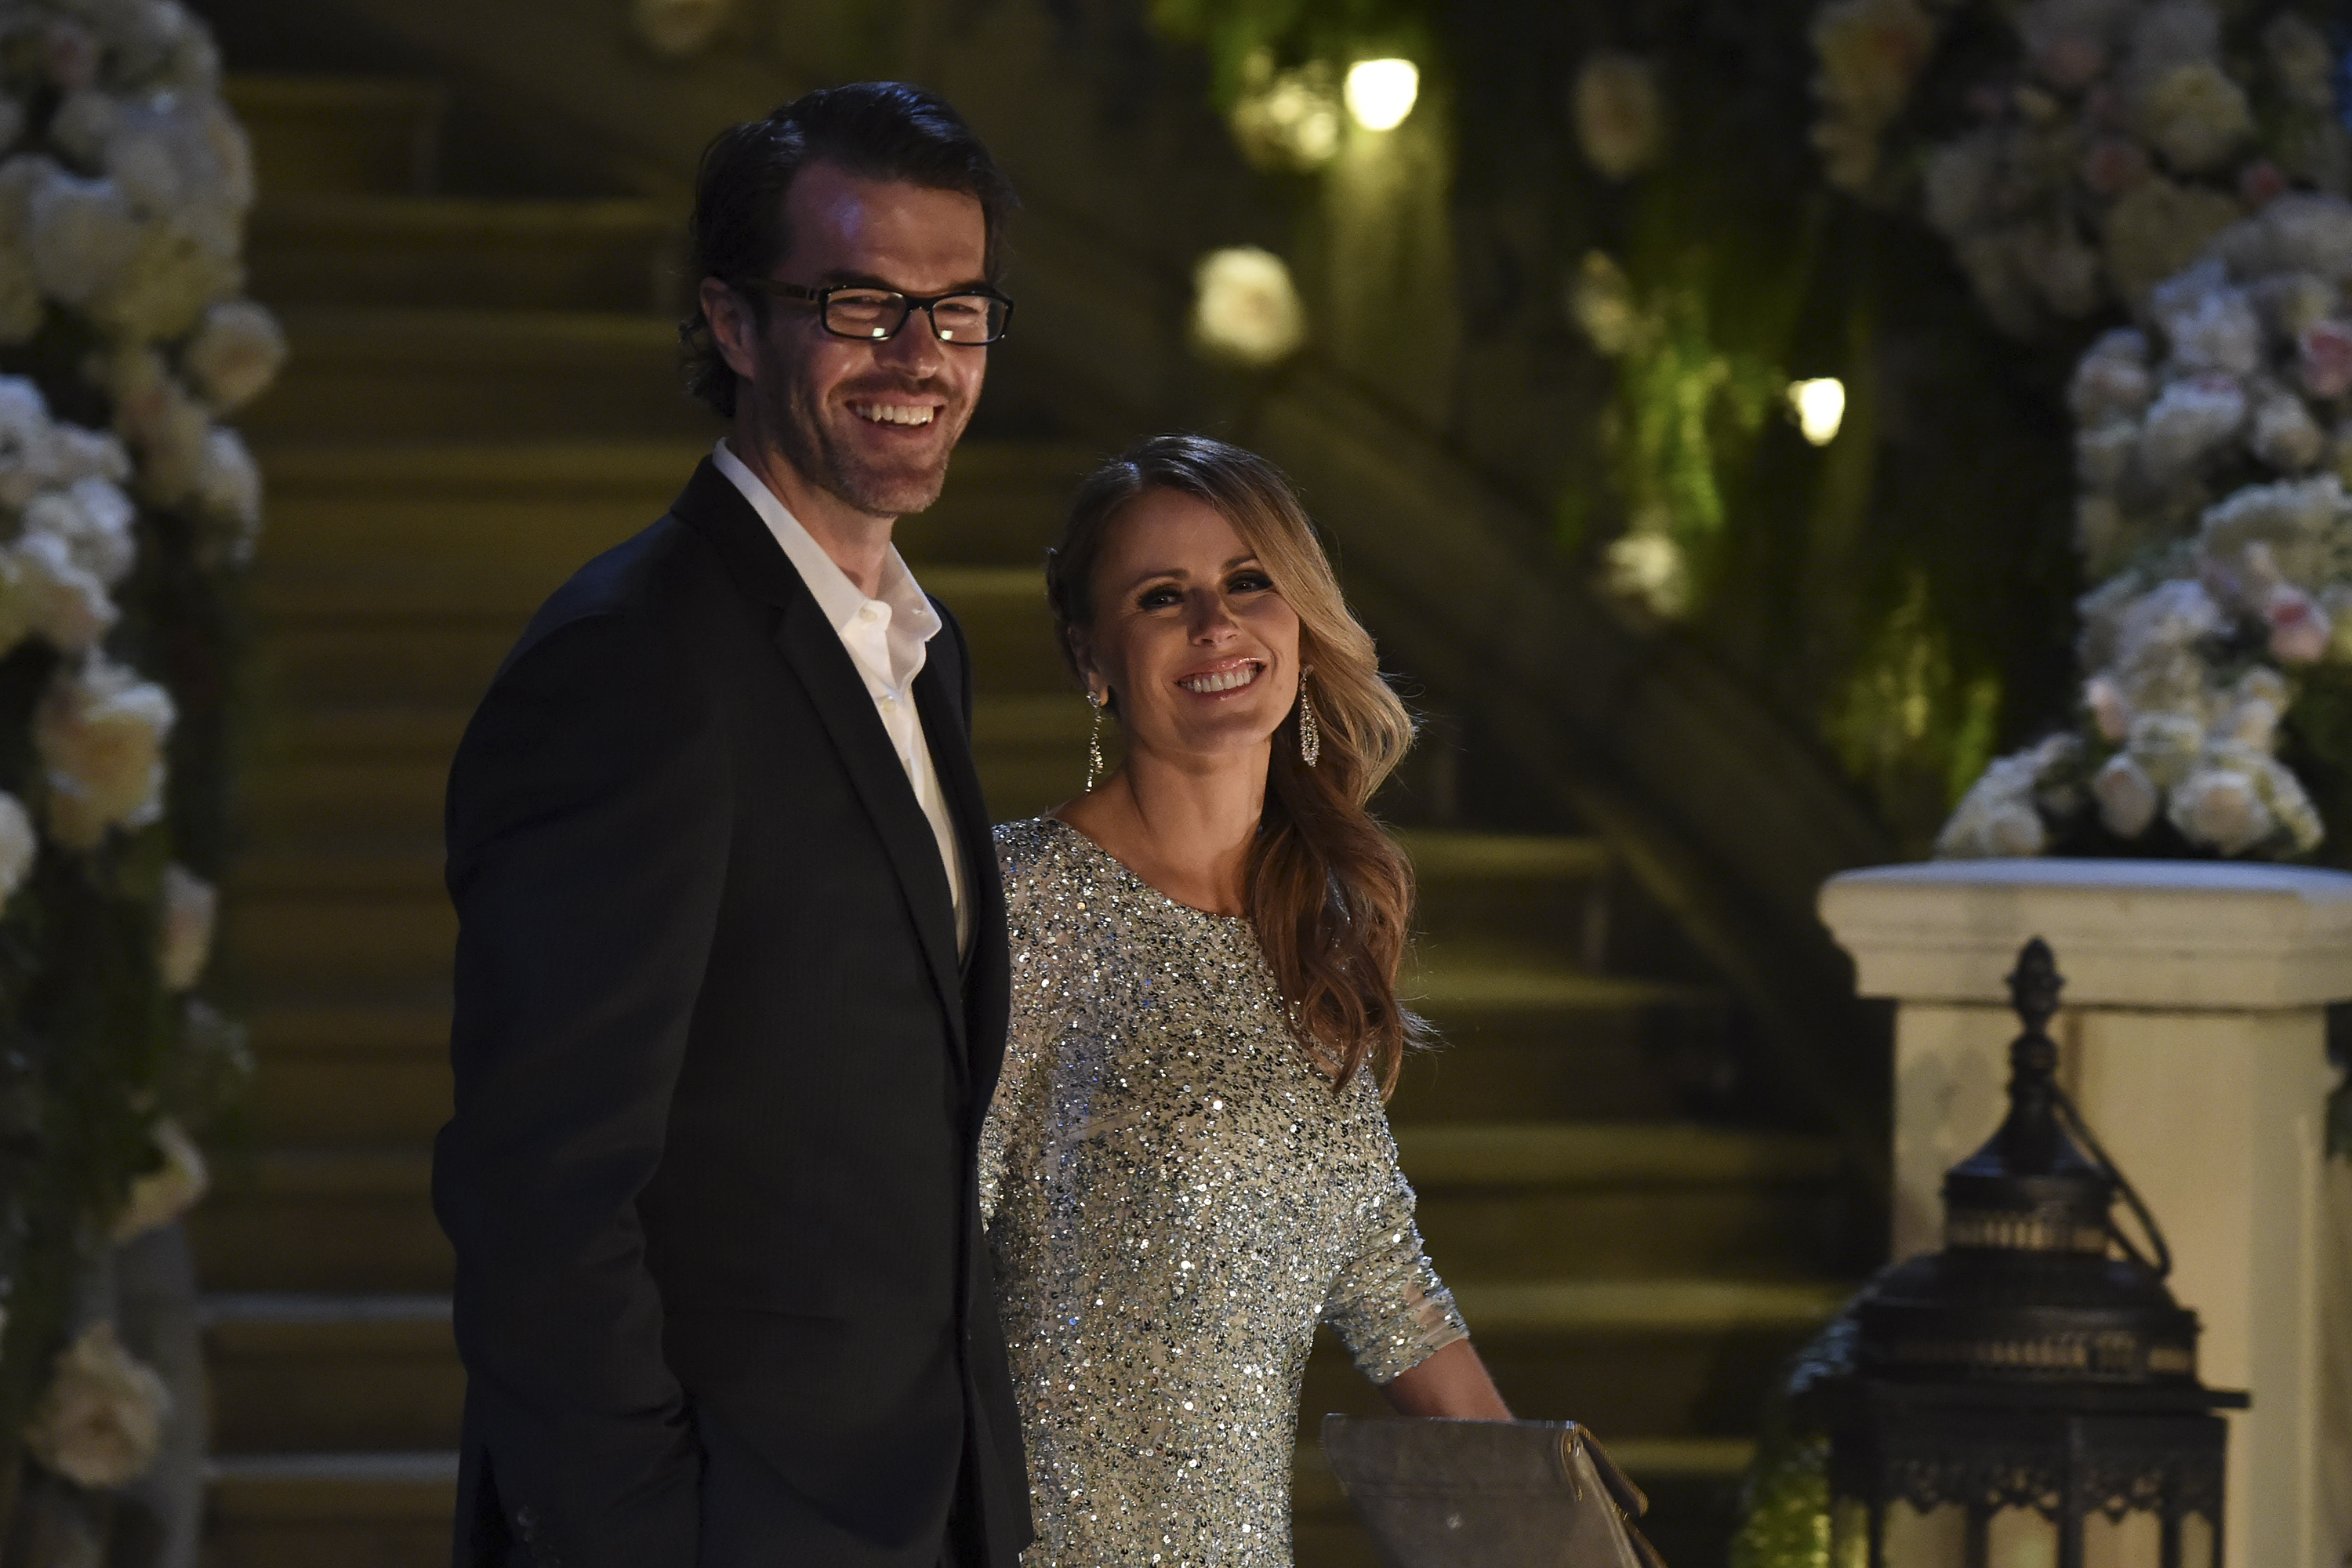 The Bachelorettes Ryan Sutter On How Couples Can Be Healthy